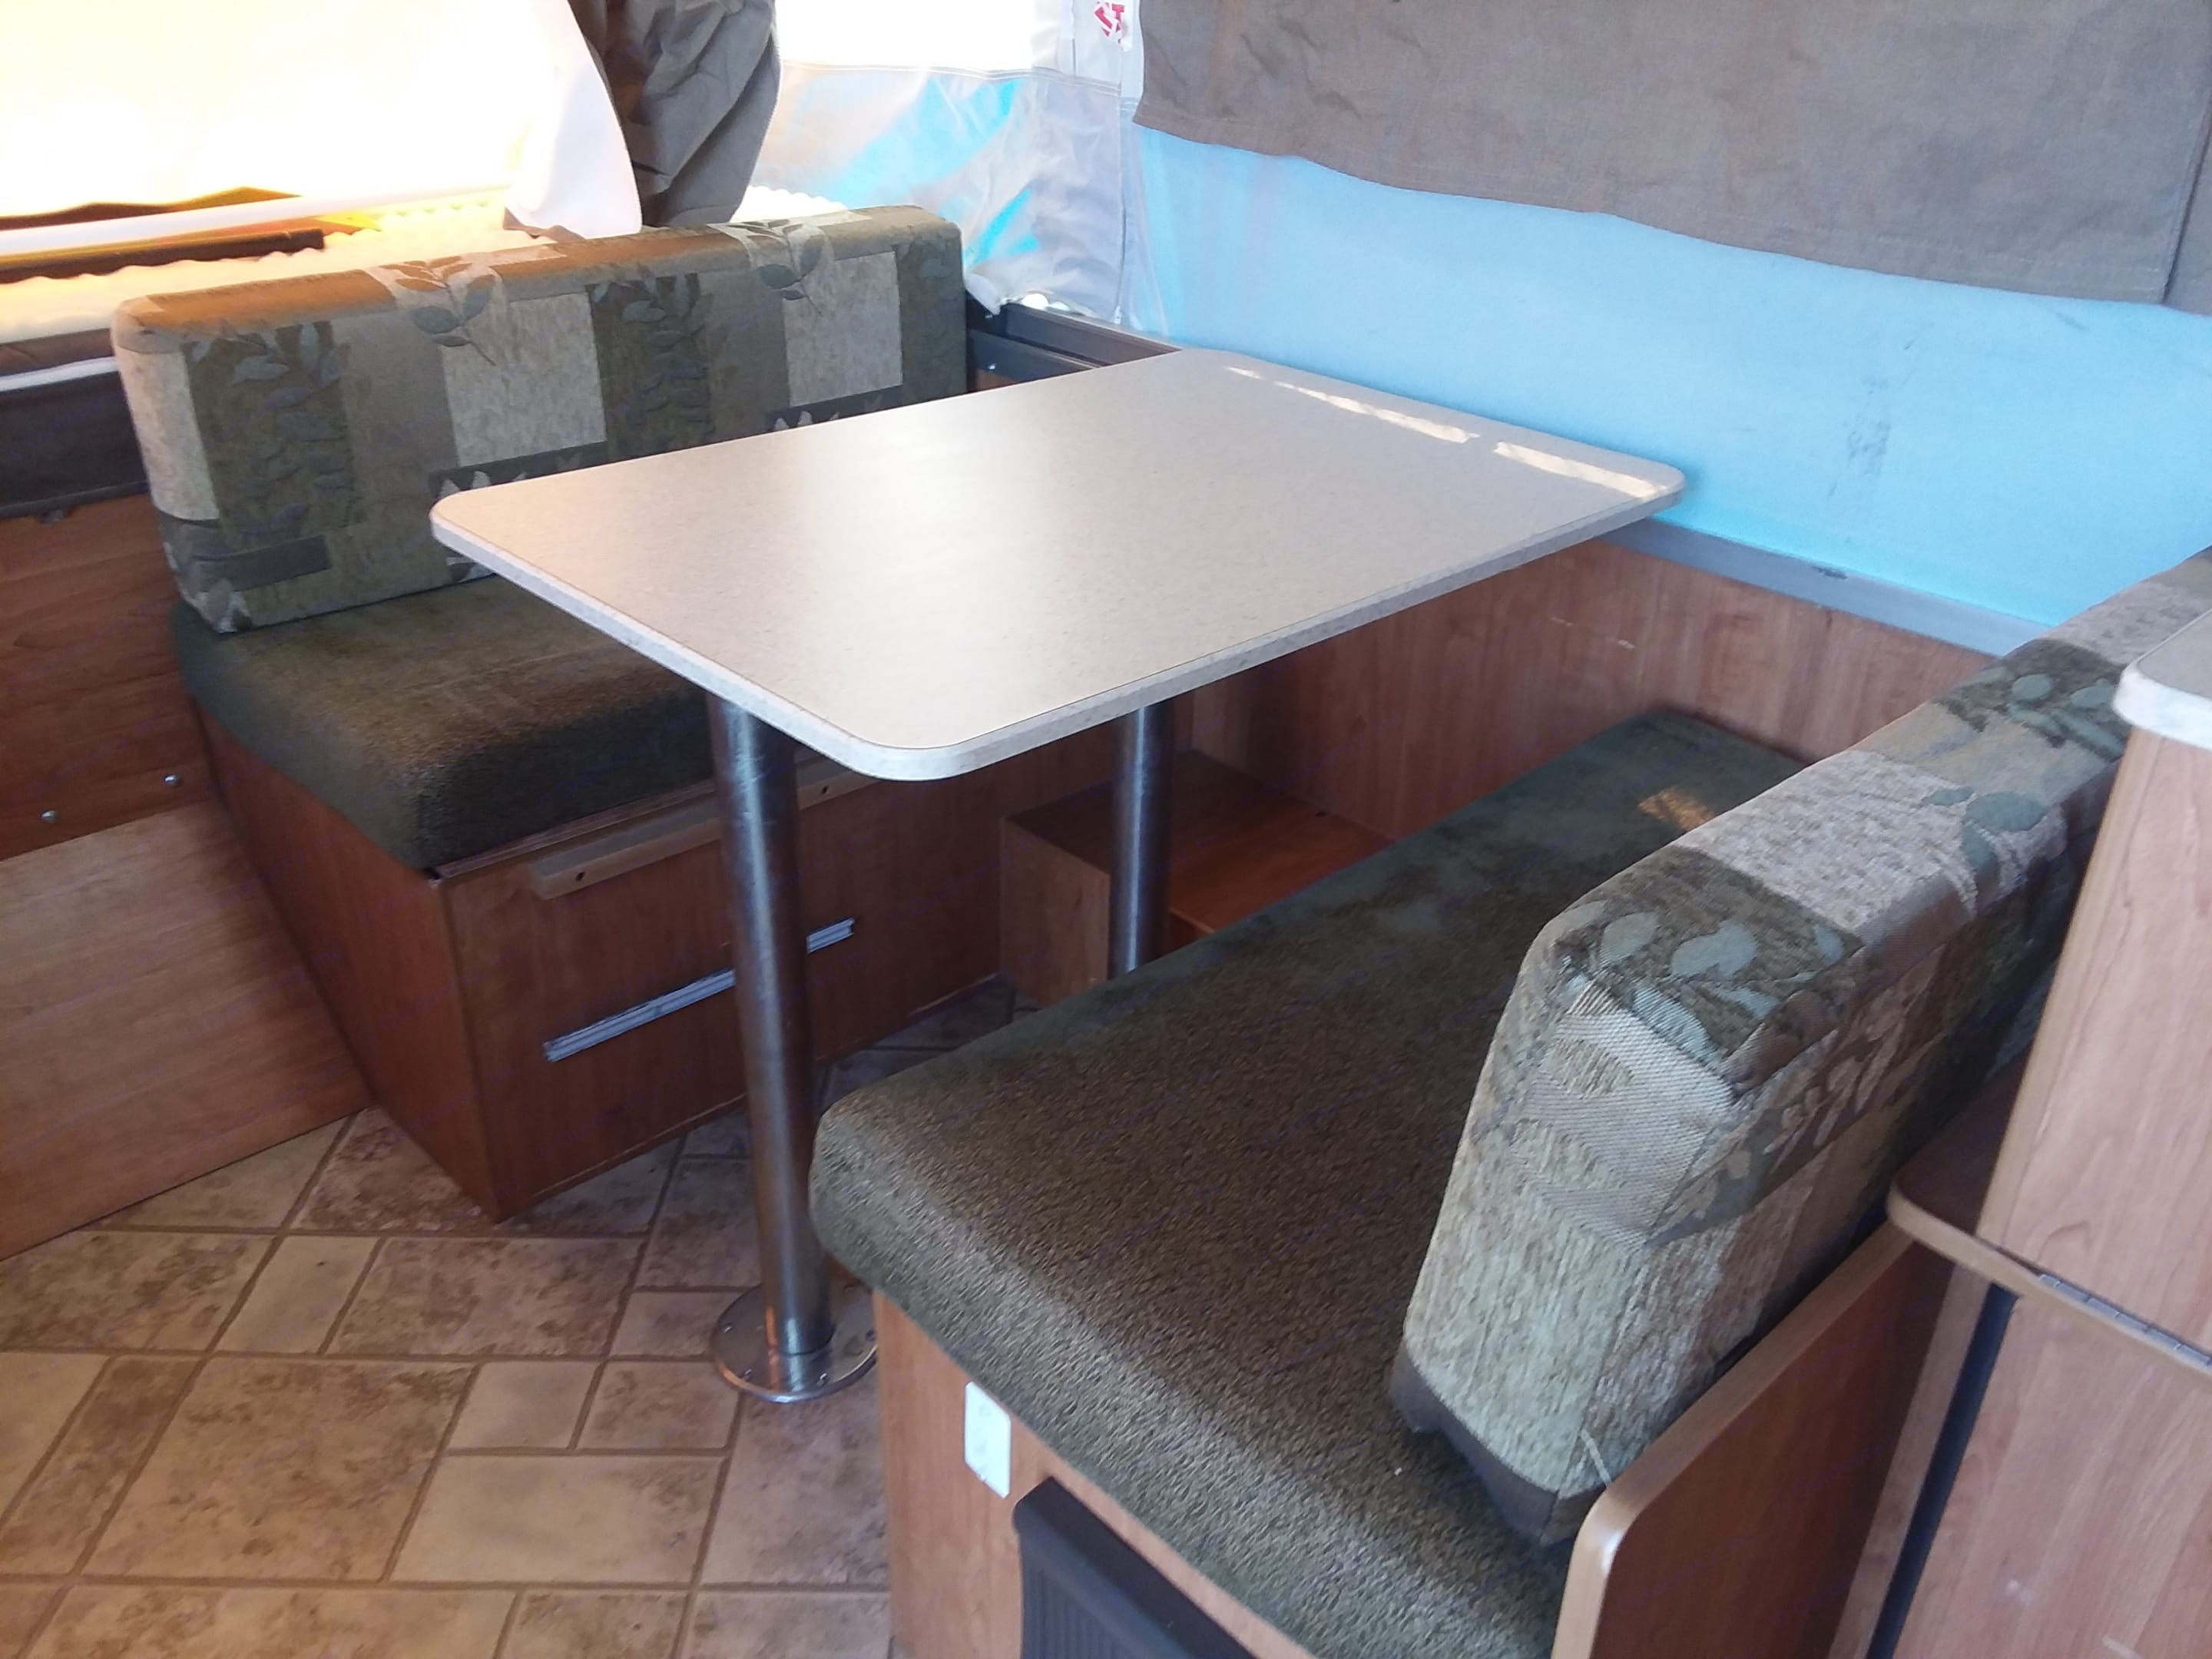 Dinette Table shown set up for dining.. Flagstaff MAC 176LTD 2010